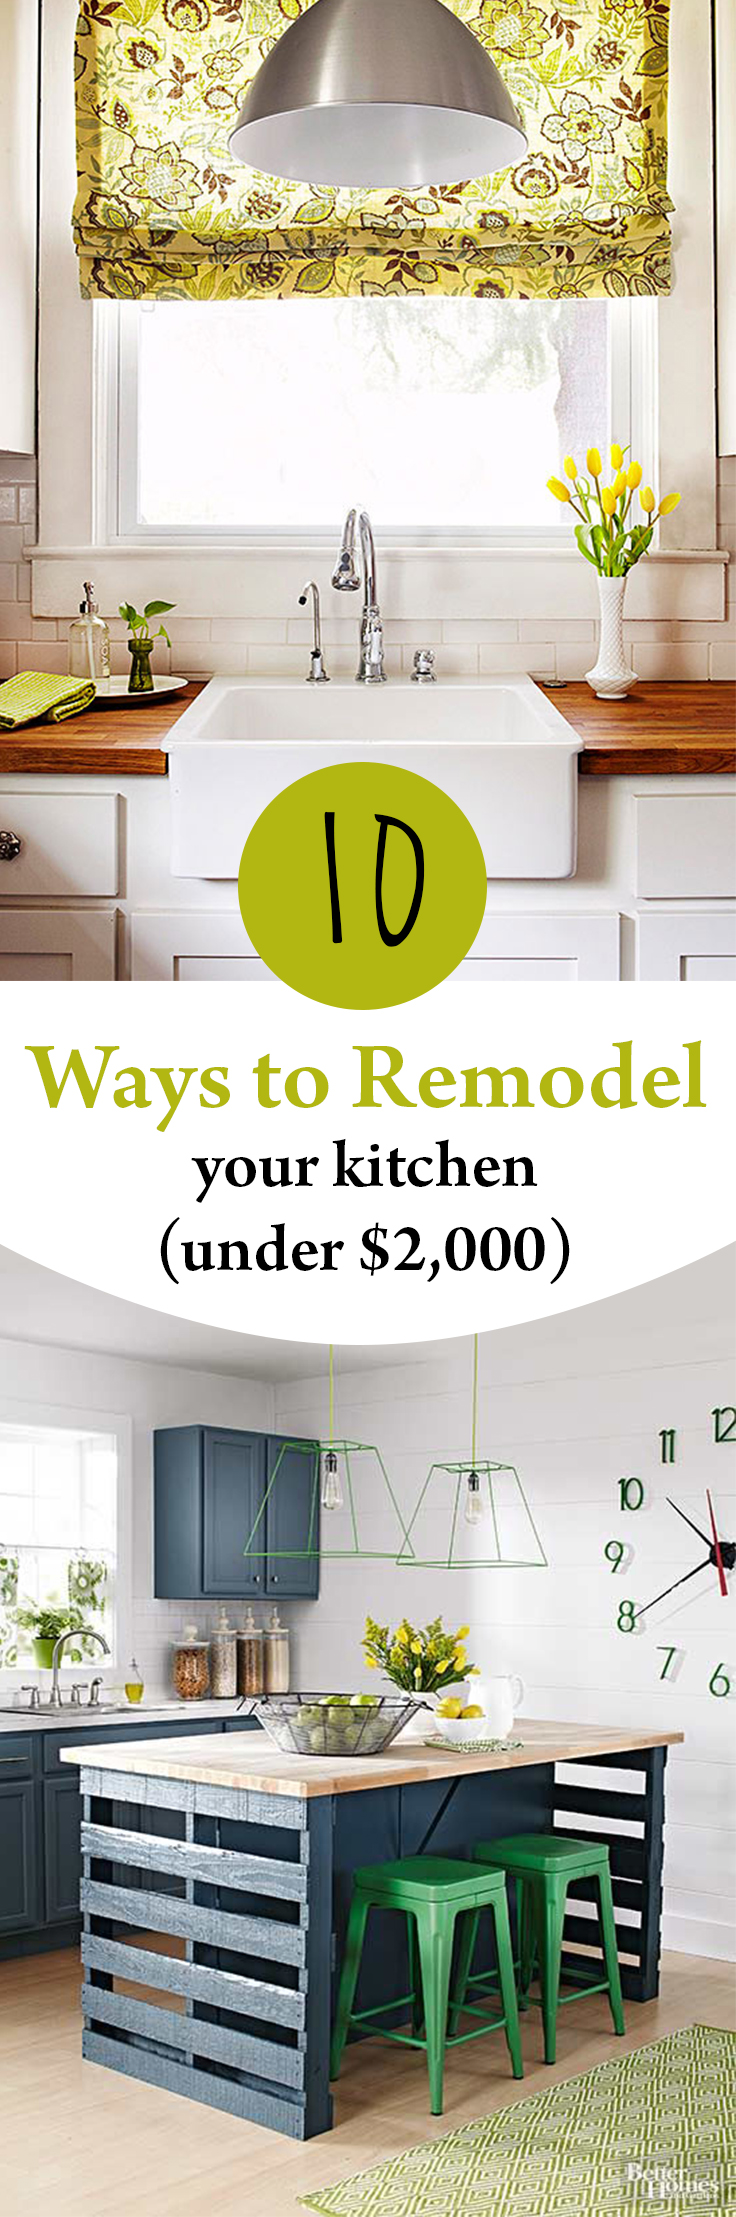 10 Ways to Remodel Your Kitchen (Under $2,000) - Wrapped in Rust